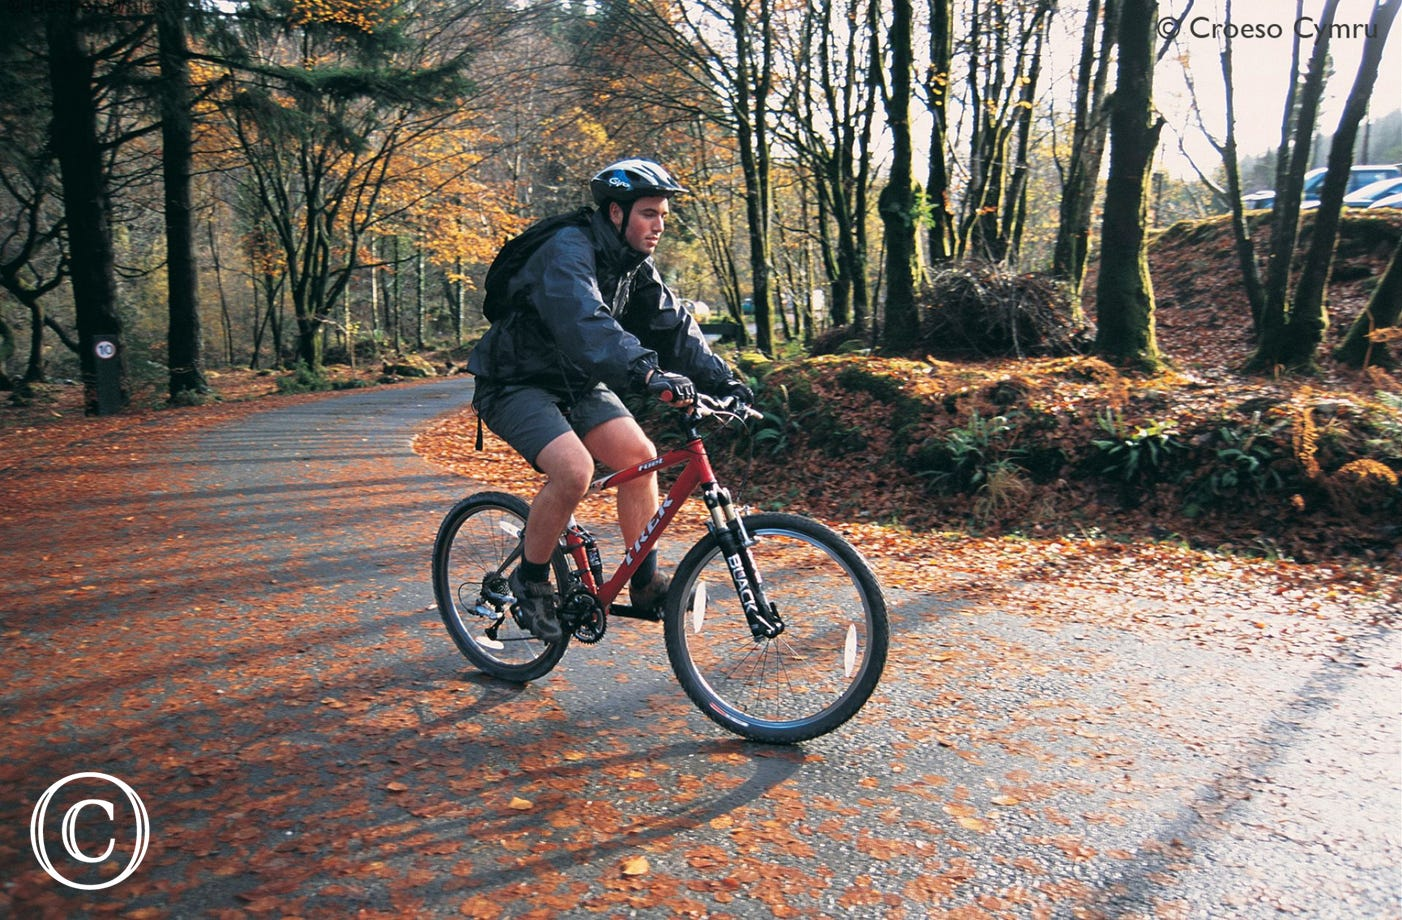 Numerous cycling opportunities, including a cycle route from the village to Machynlleth